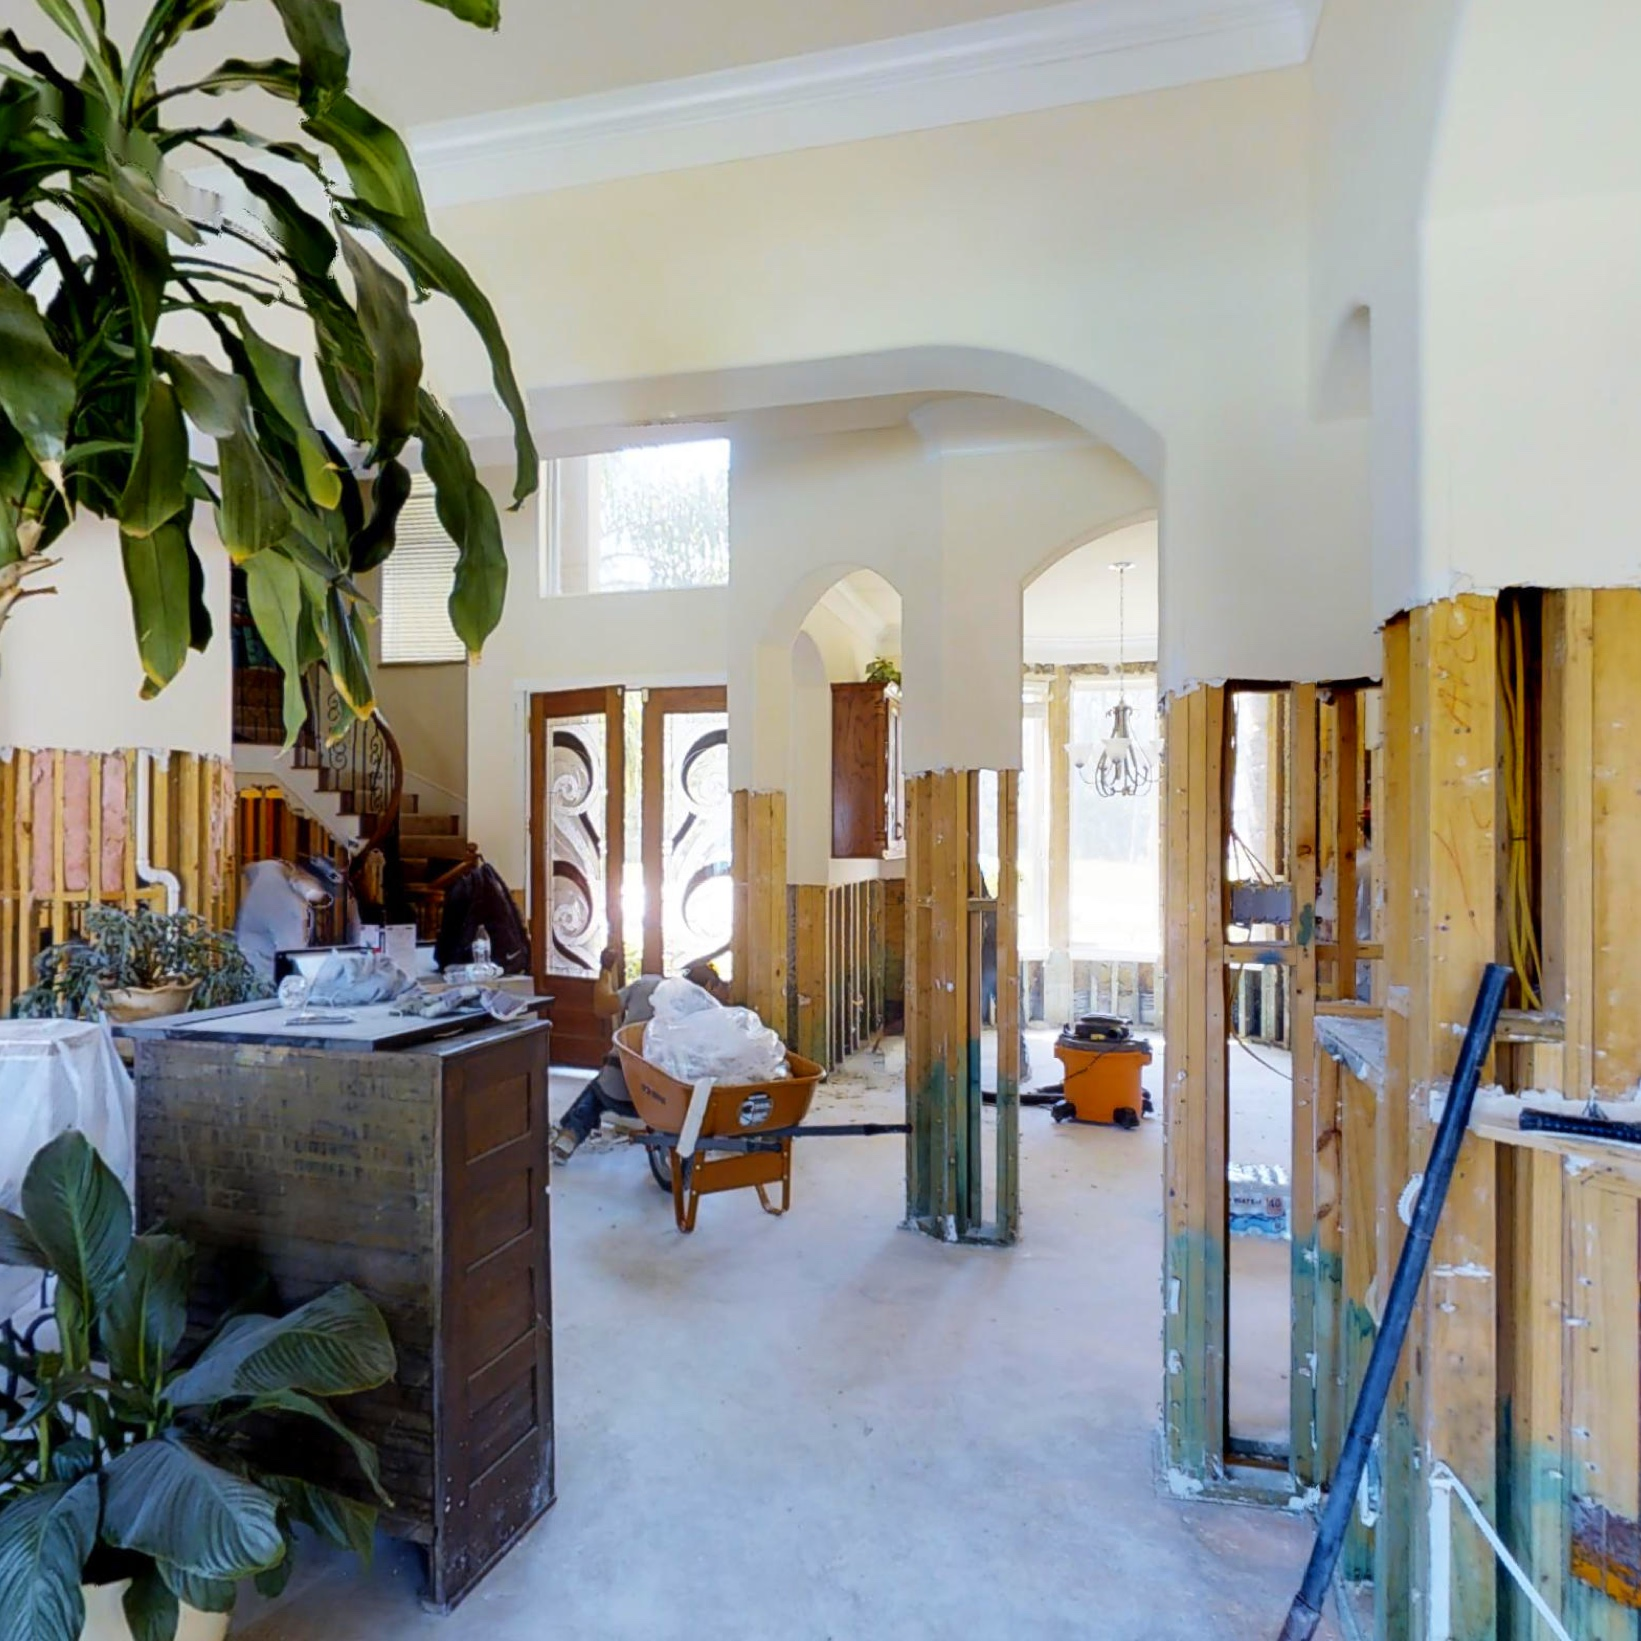 A half-finished living room, with house plants and construction equipment